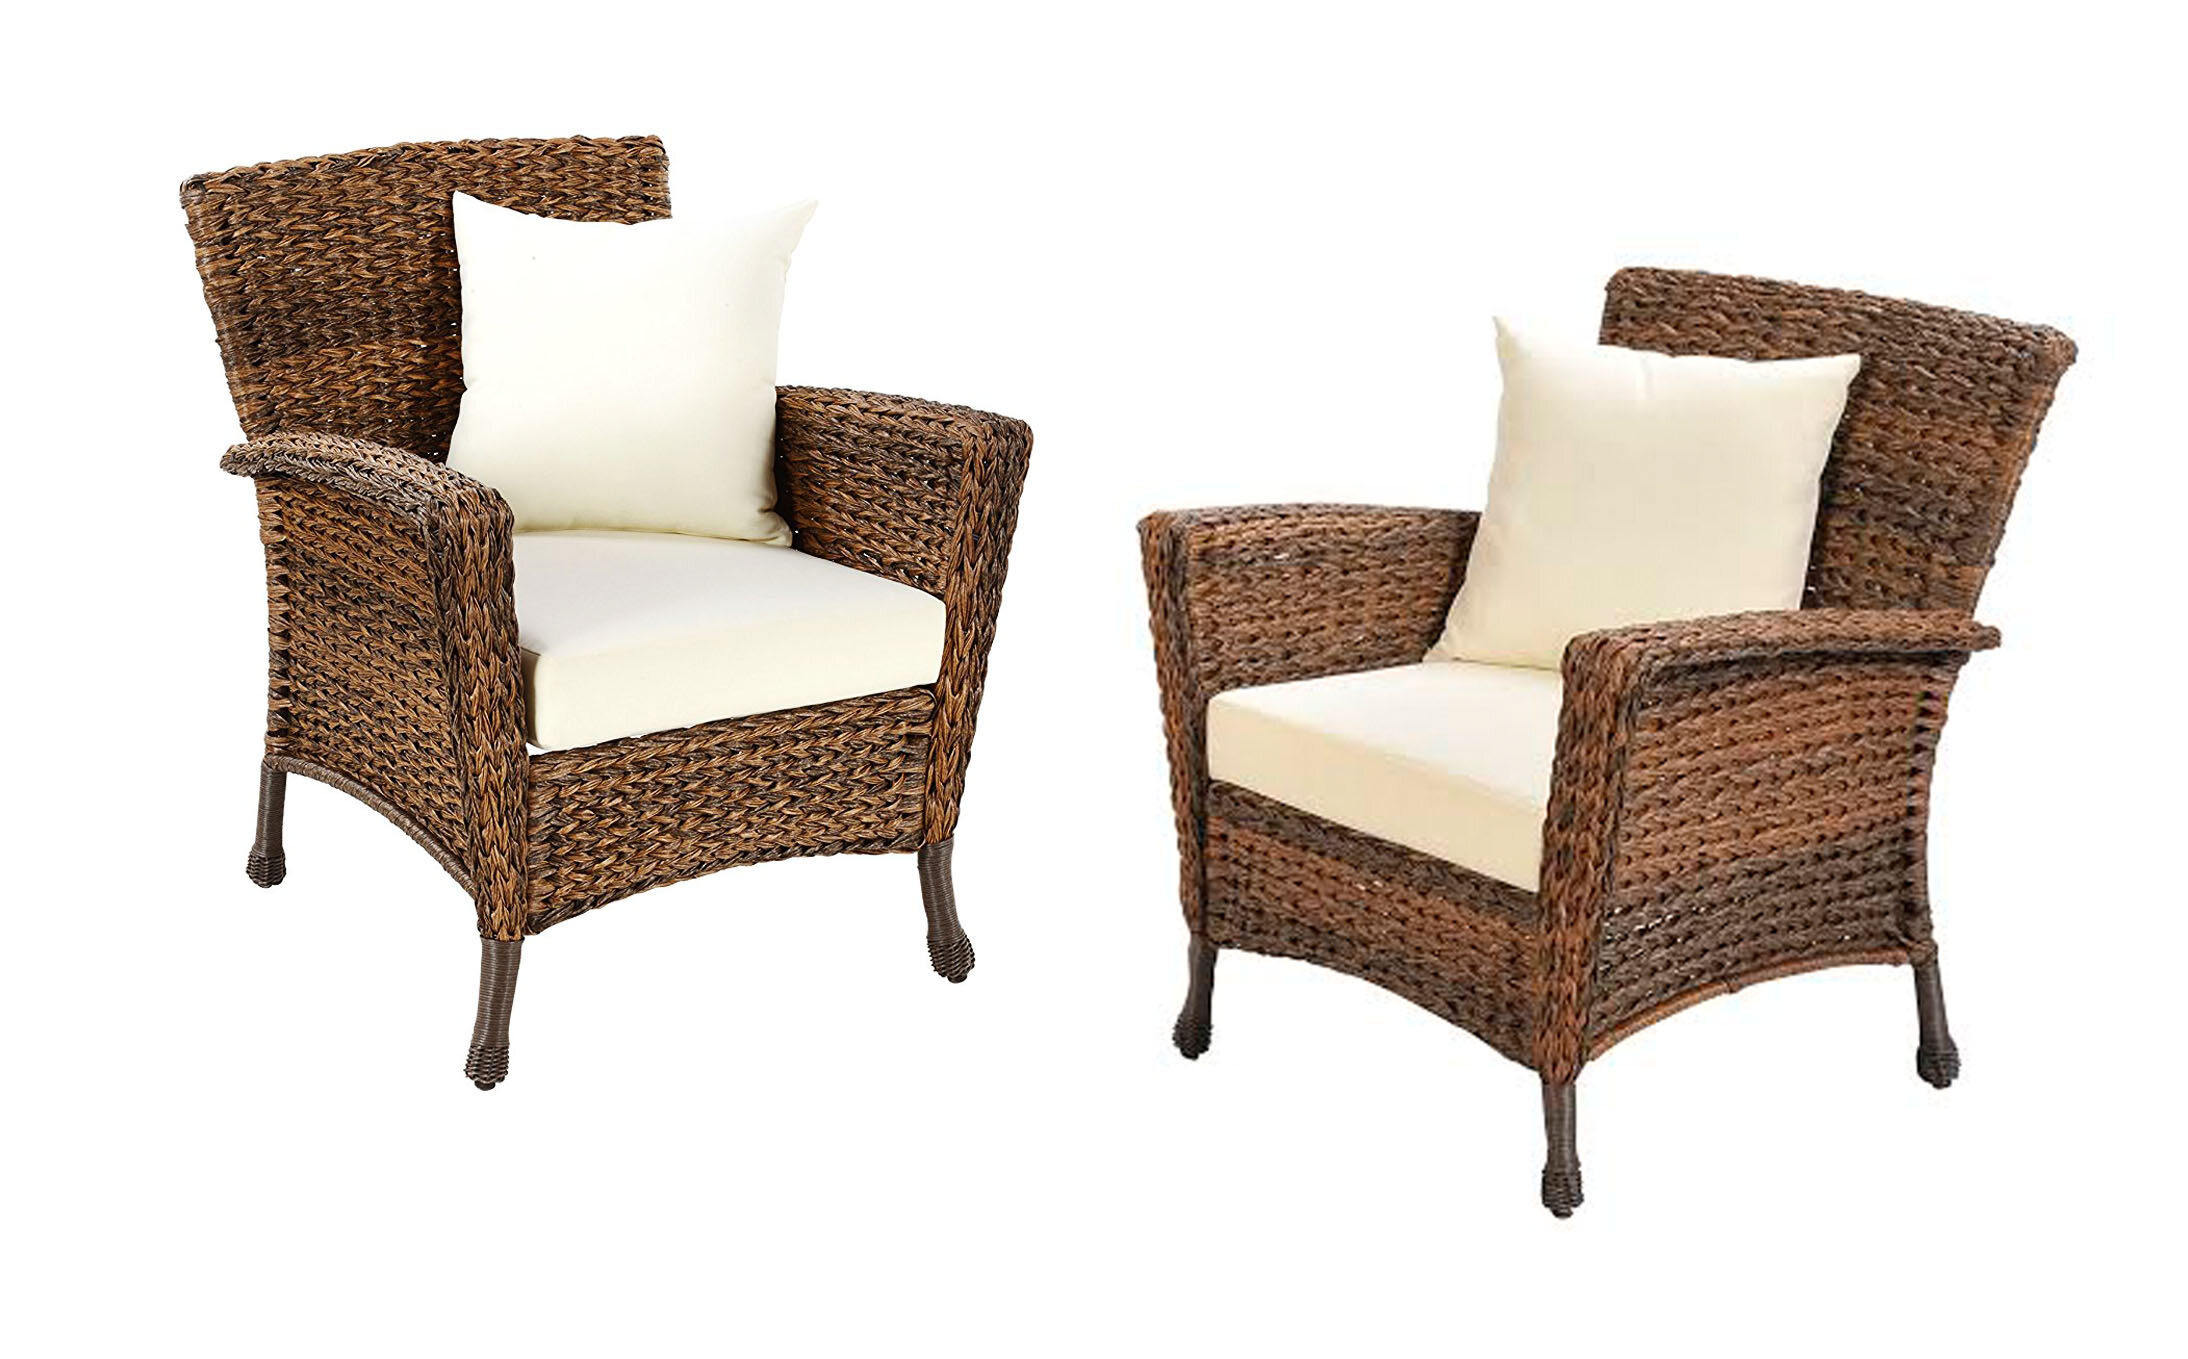 August Grove Rumsey Garden Patio Furniture 2 Piece With Cushions Wayfair